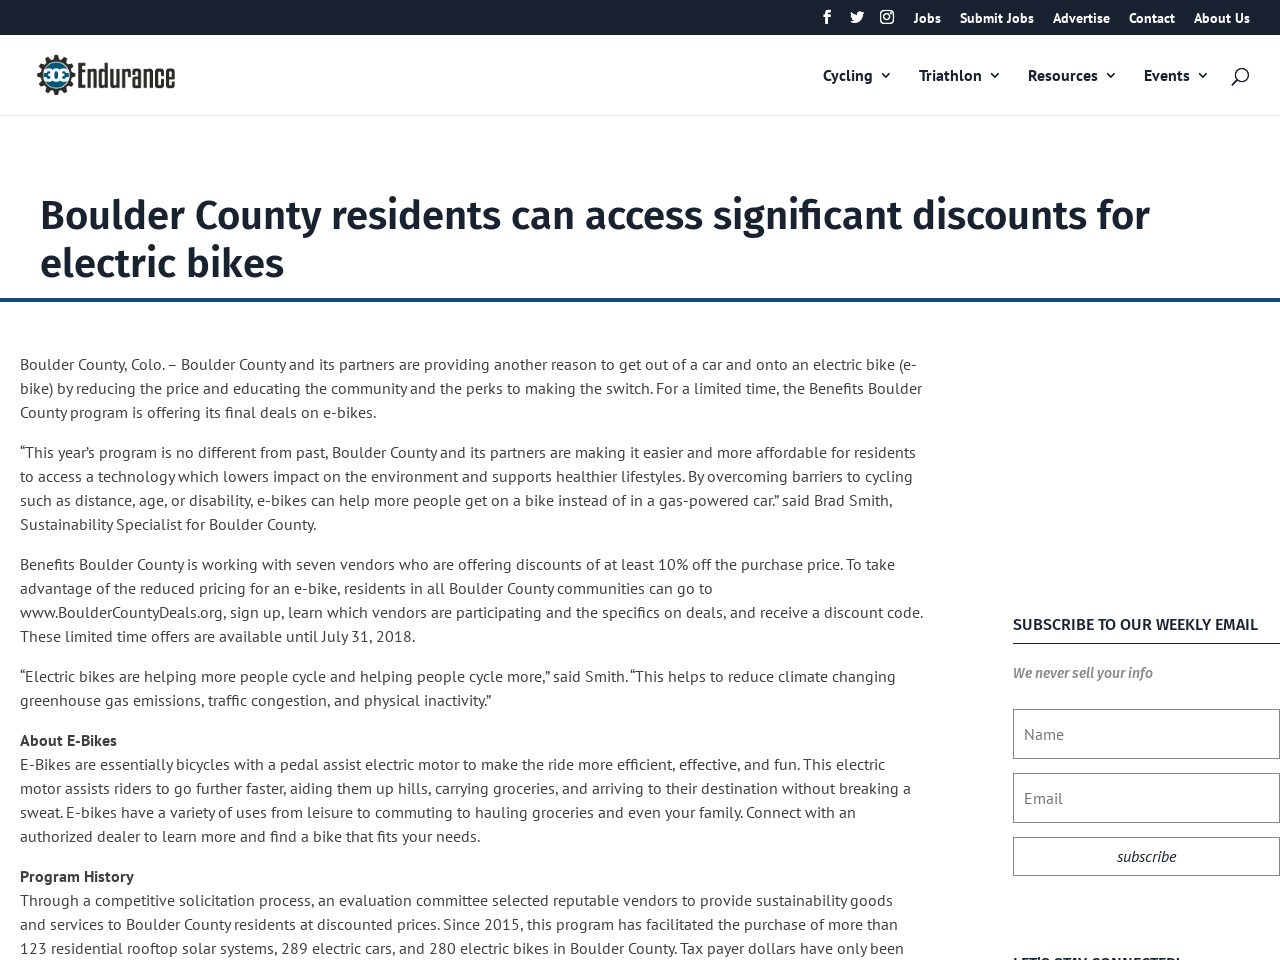 Boulder County residents can access significant discounts for electric bikes